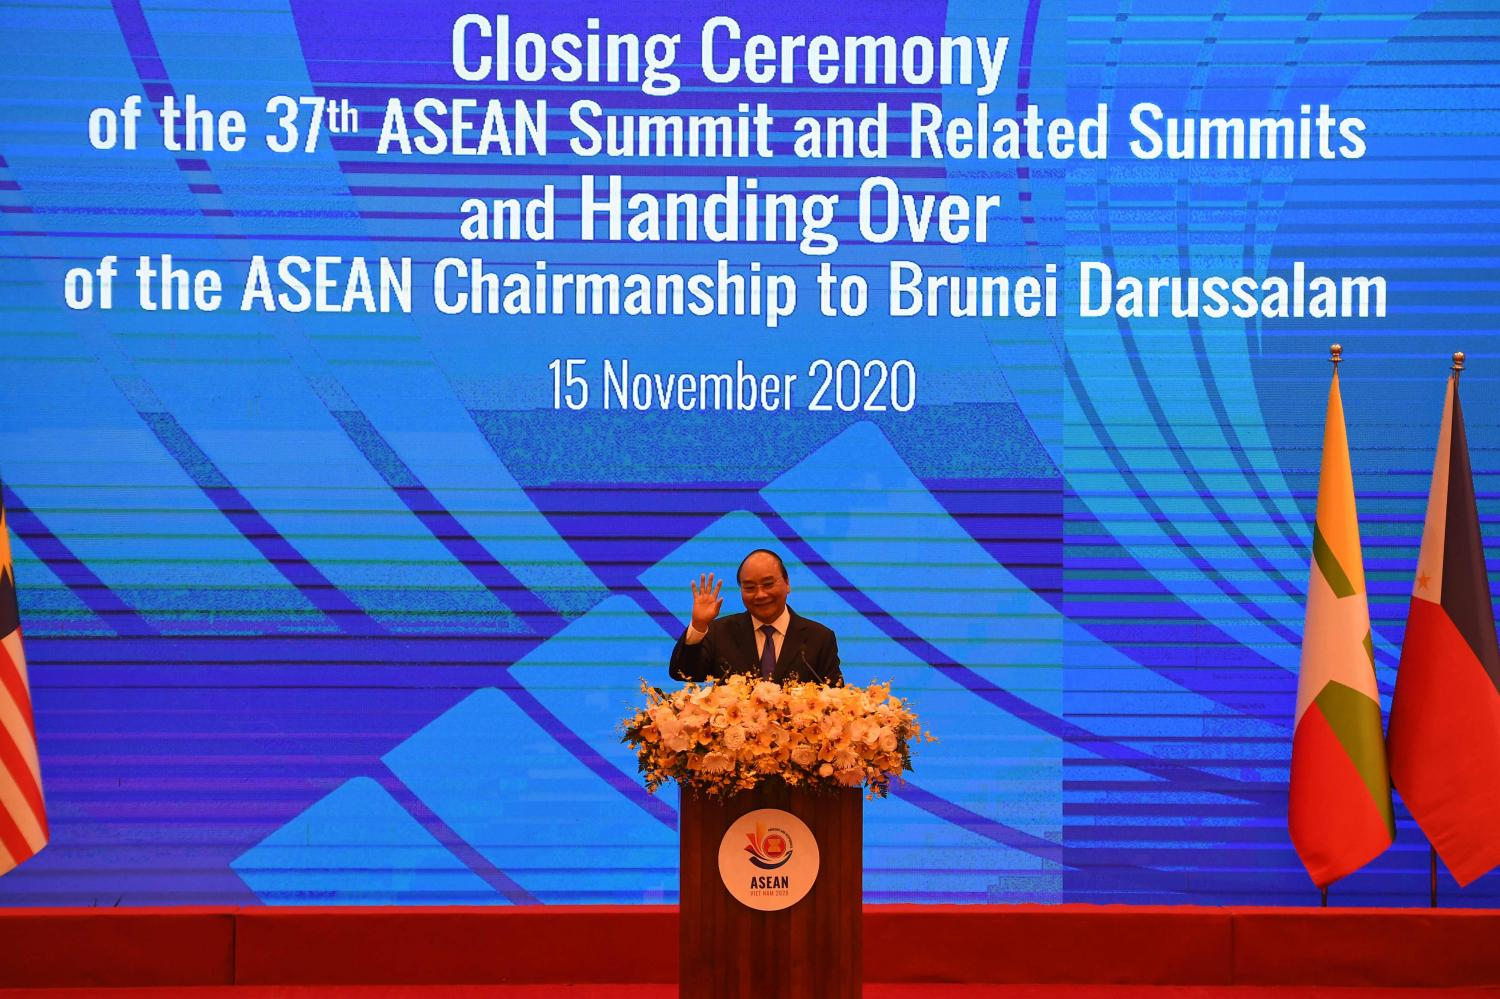 Vietnam's Prime Minister Nguyen Xuan Phuc takes part in the closing ceremony of the Association of Southeast Asian Nations (Asean) Summit being held online in Hanoi.AFP